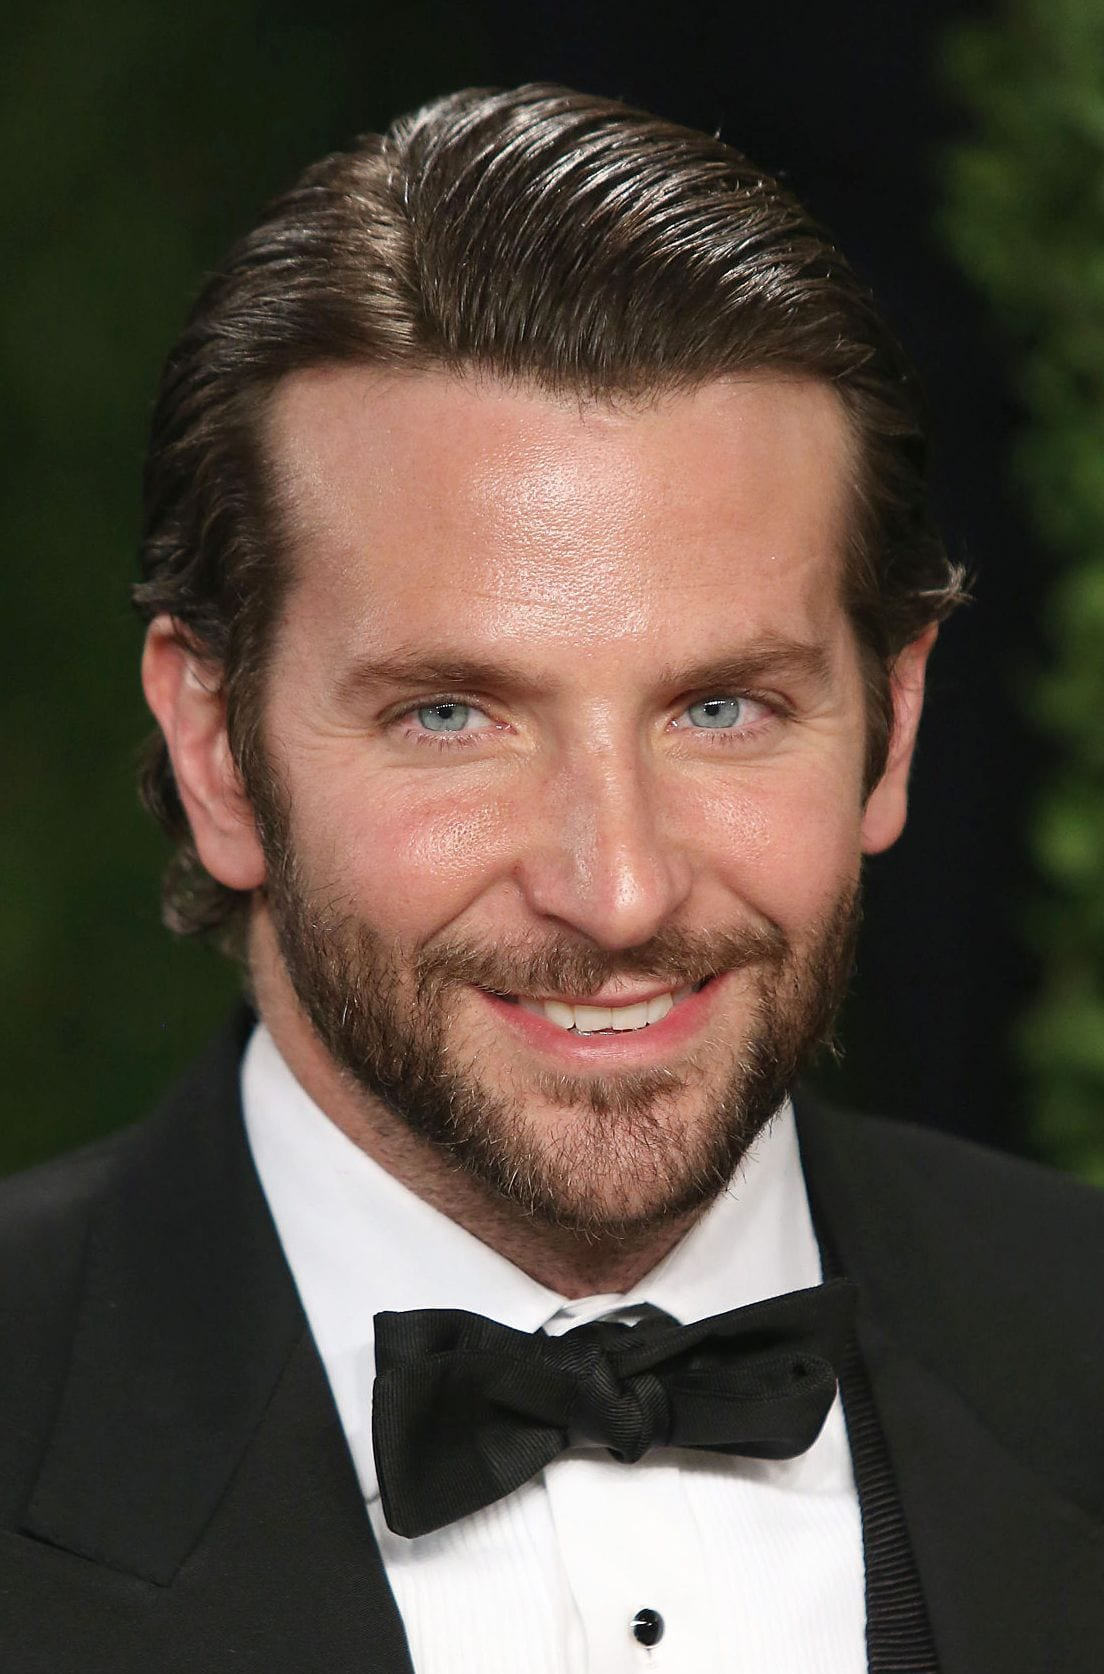 Bradley Cooper parted comb over